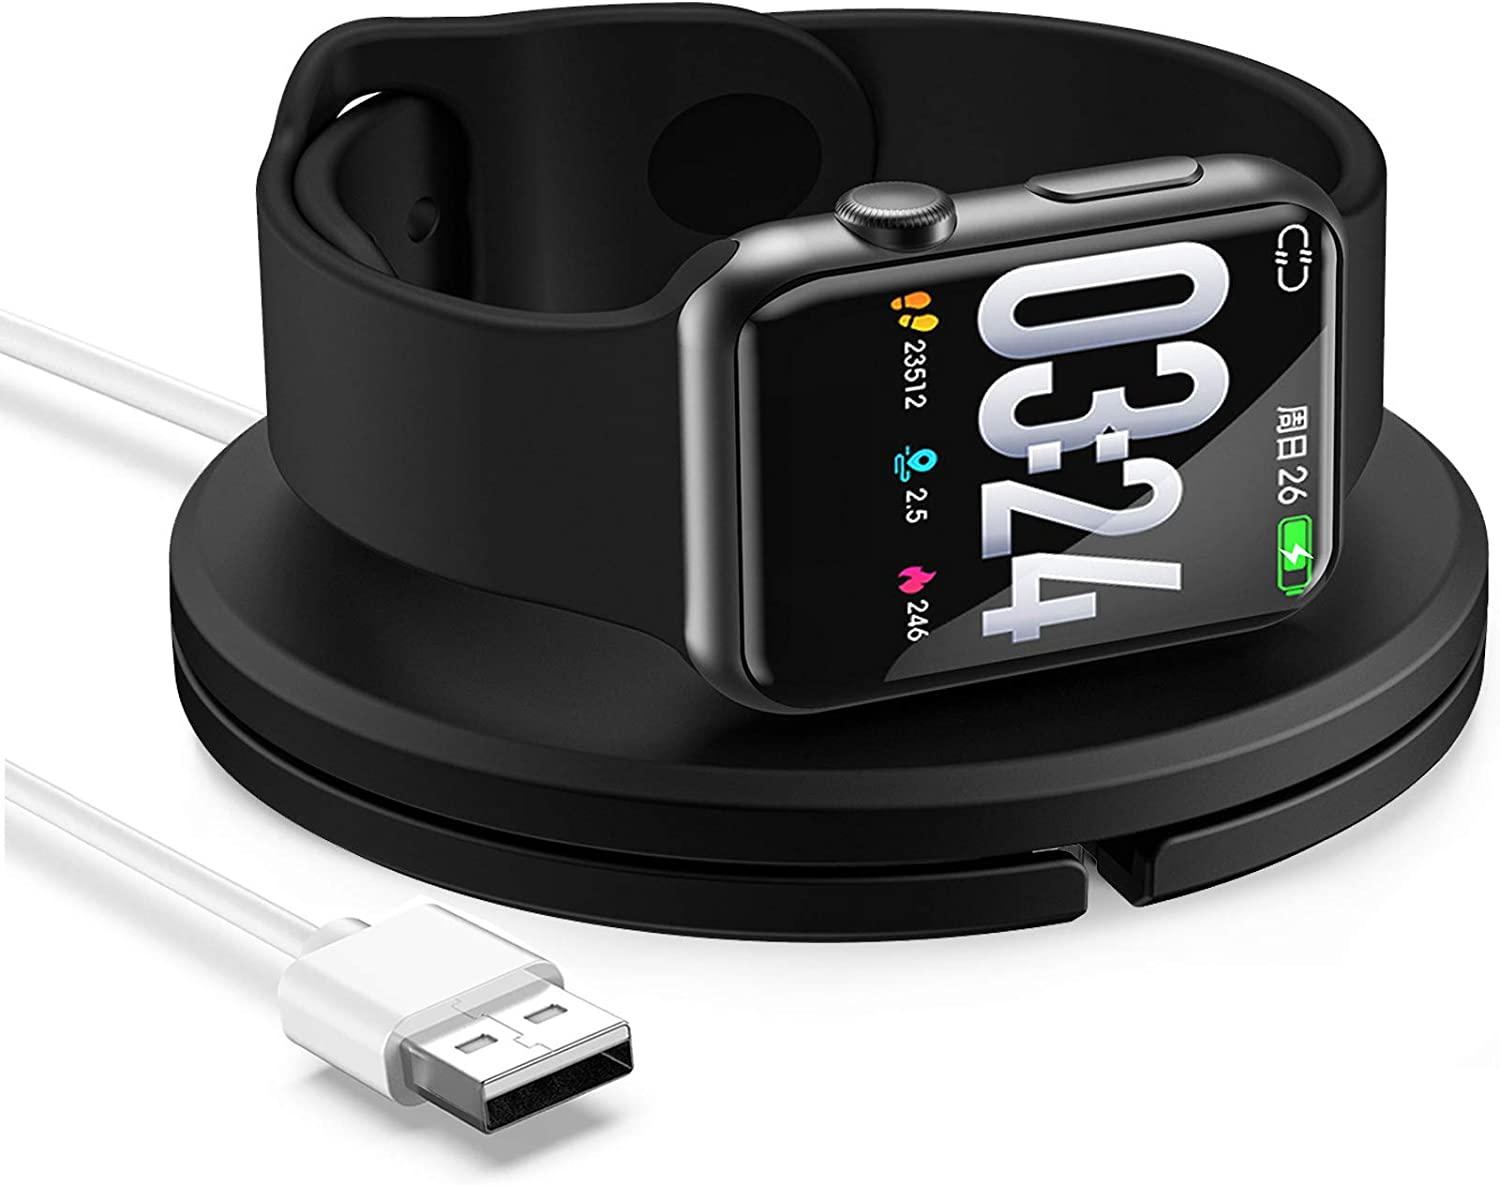 [Upgraded] Watch Charger for Apple Watch Series 6/5/4/3/2/1, Travel Stand Charger with Magnetic Charging Cable(3.1ft), Cable Organizer, Night Stand Mode Supported- Black